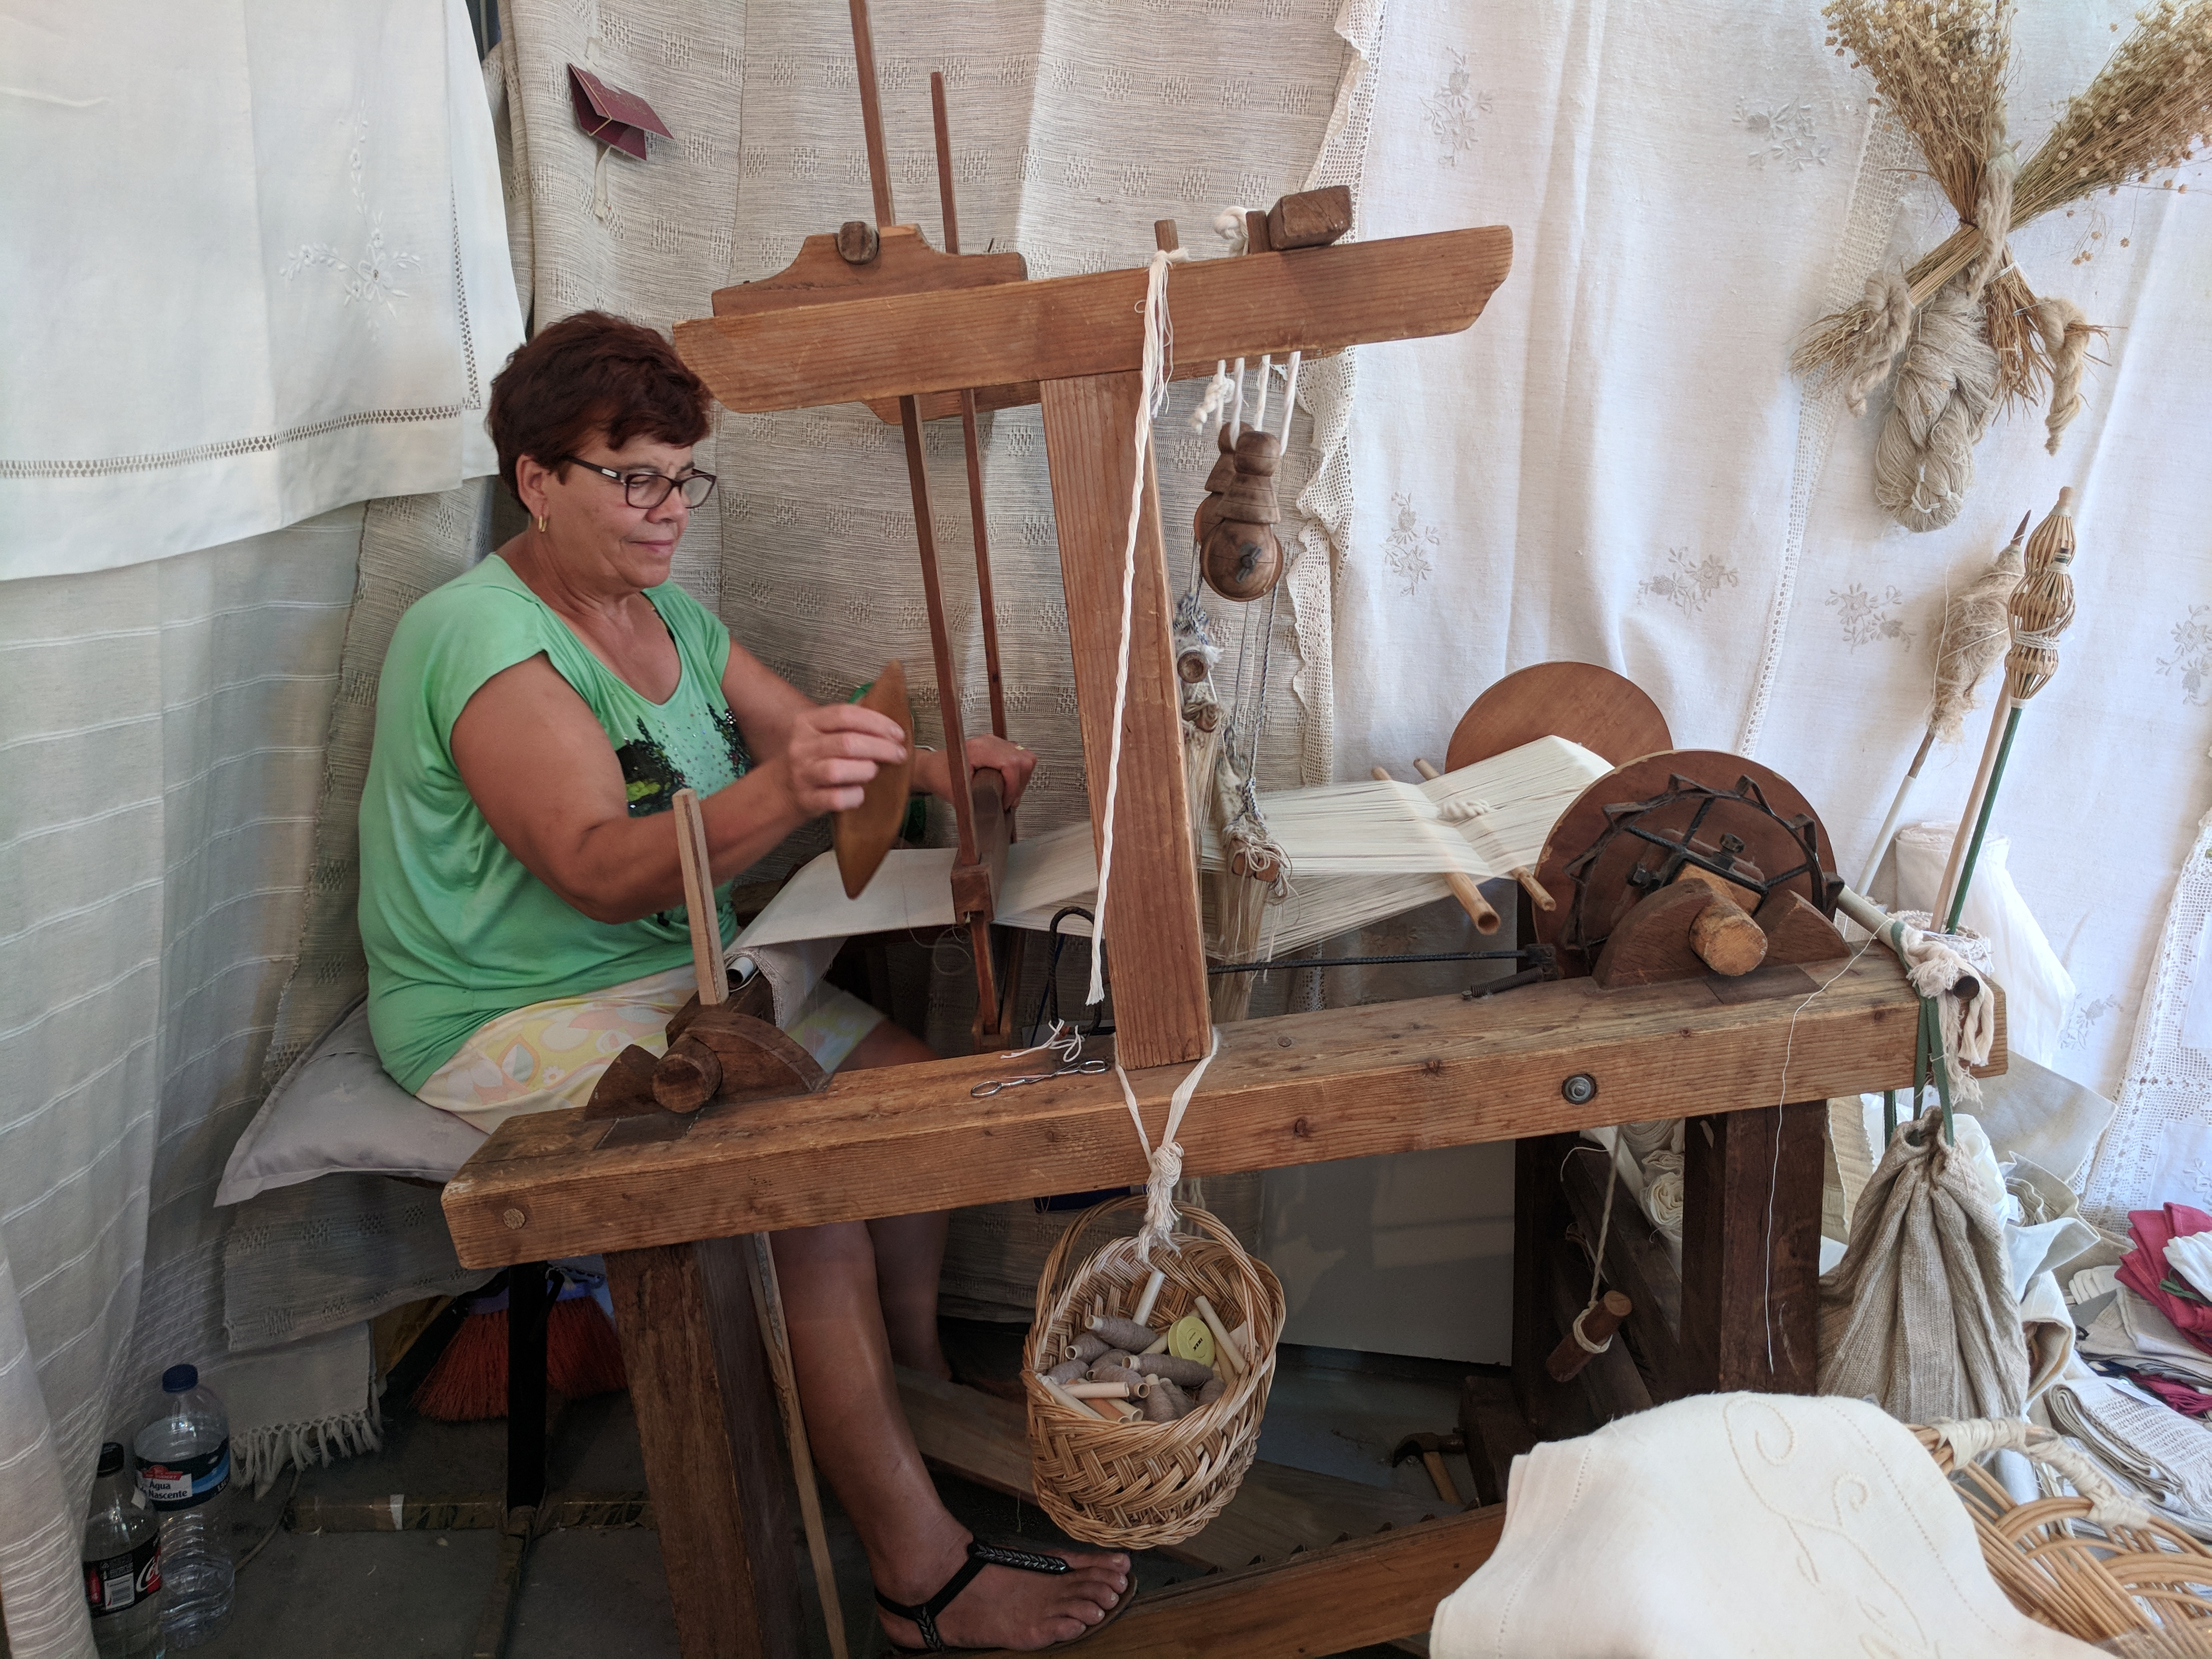 Portugal - Algarve / Fatacil (fair) in Lagoa: weaver